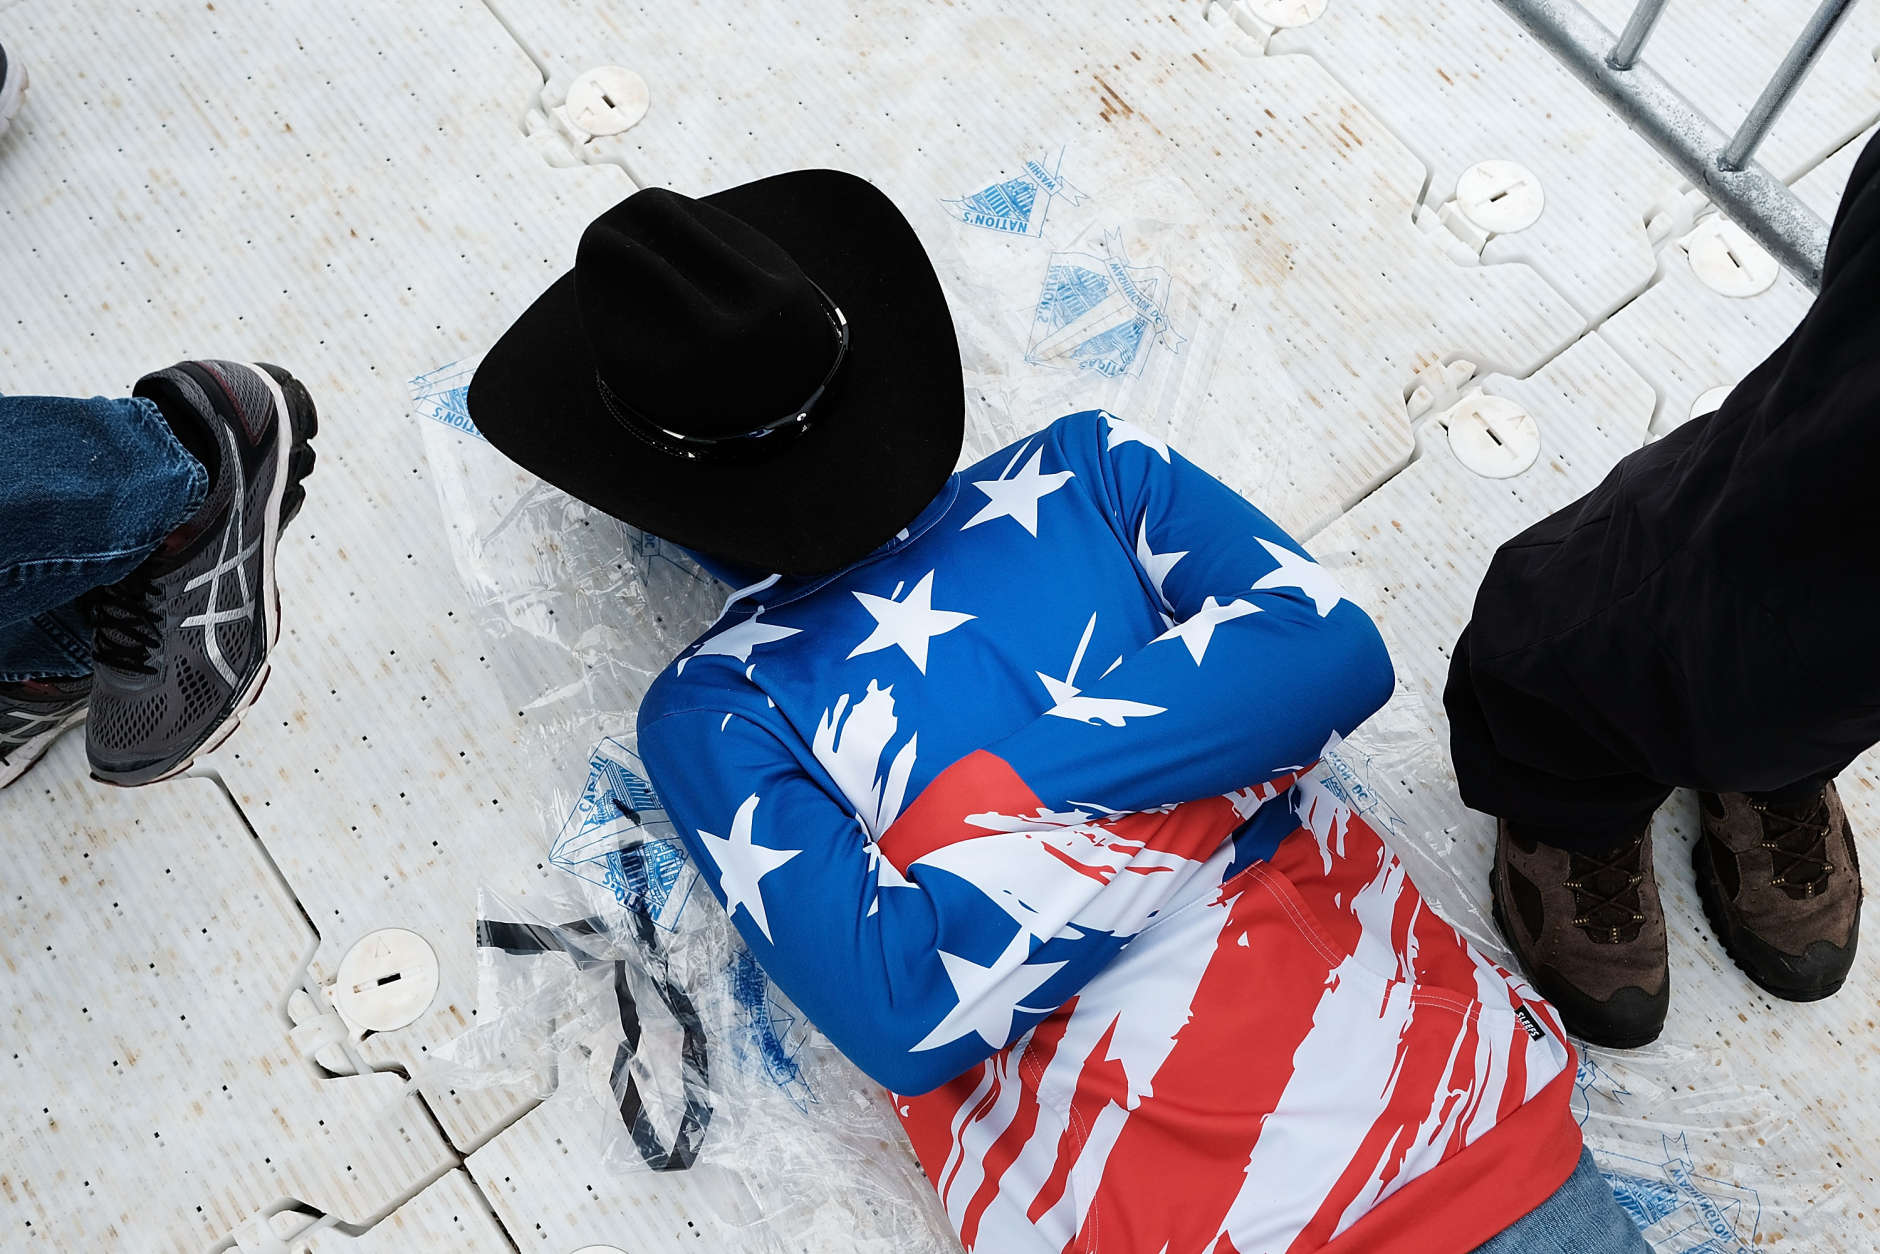 WASHINGTON, DC - JANUARY 20:  A man rests on the National Mall during the inauguration of Donald Trump on January 20, 2017 in Washington, DC. Washington and the entire nation are preparing for the transfer of the United States presidency later today as Donald Trump is sworn is as the 45th president Friday.  (Photo by Spencer Platt/Getty Images)